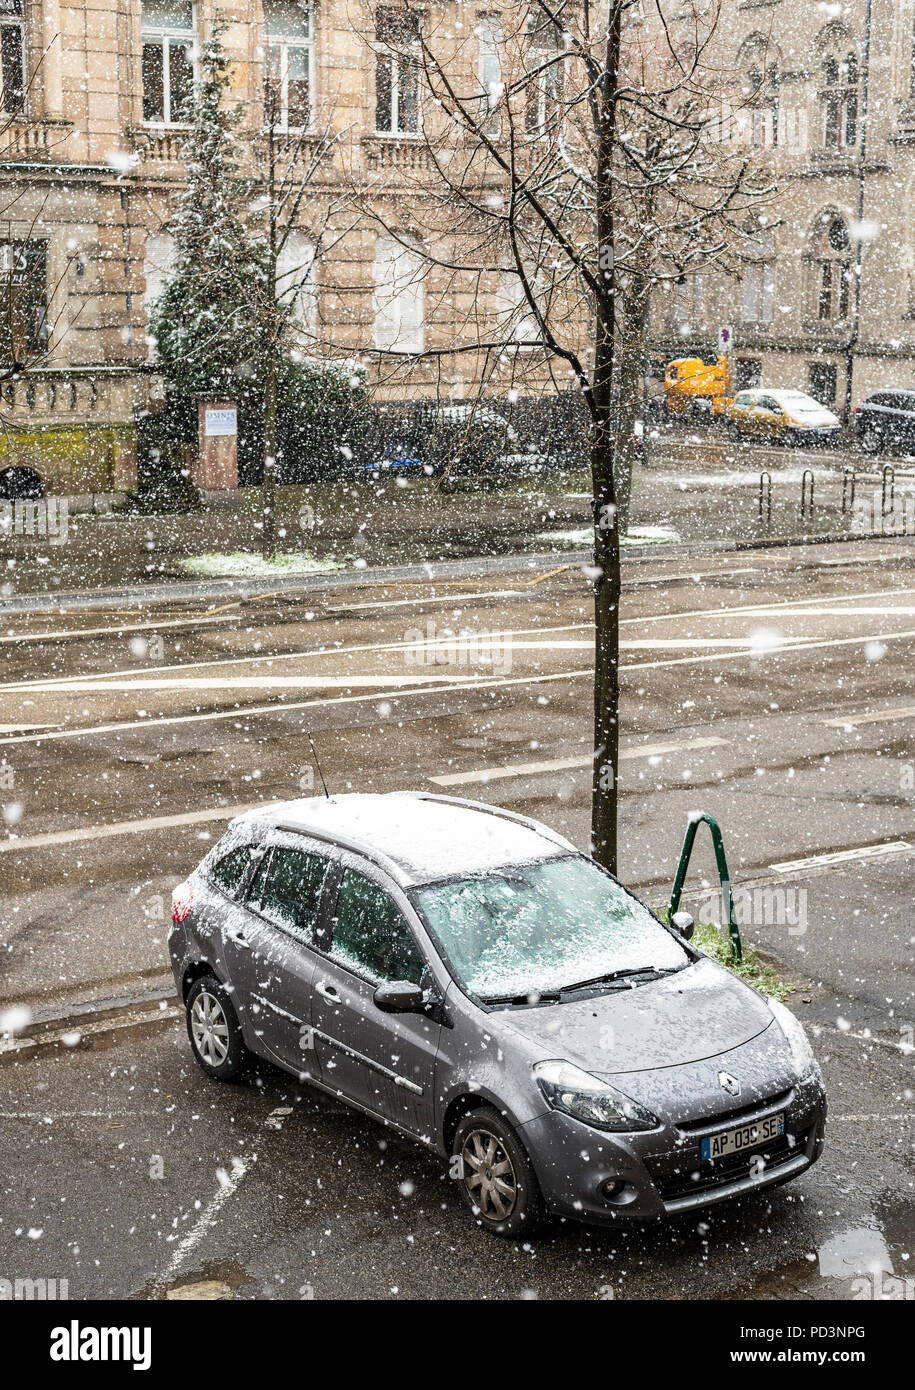 Car parked on pavement, snow storm, Strasbourg, Alsace, France, Europe, - Stock Image